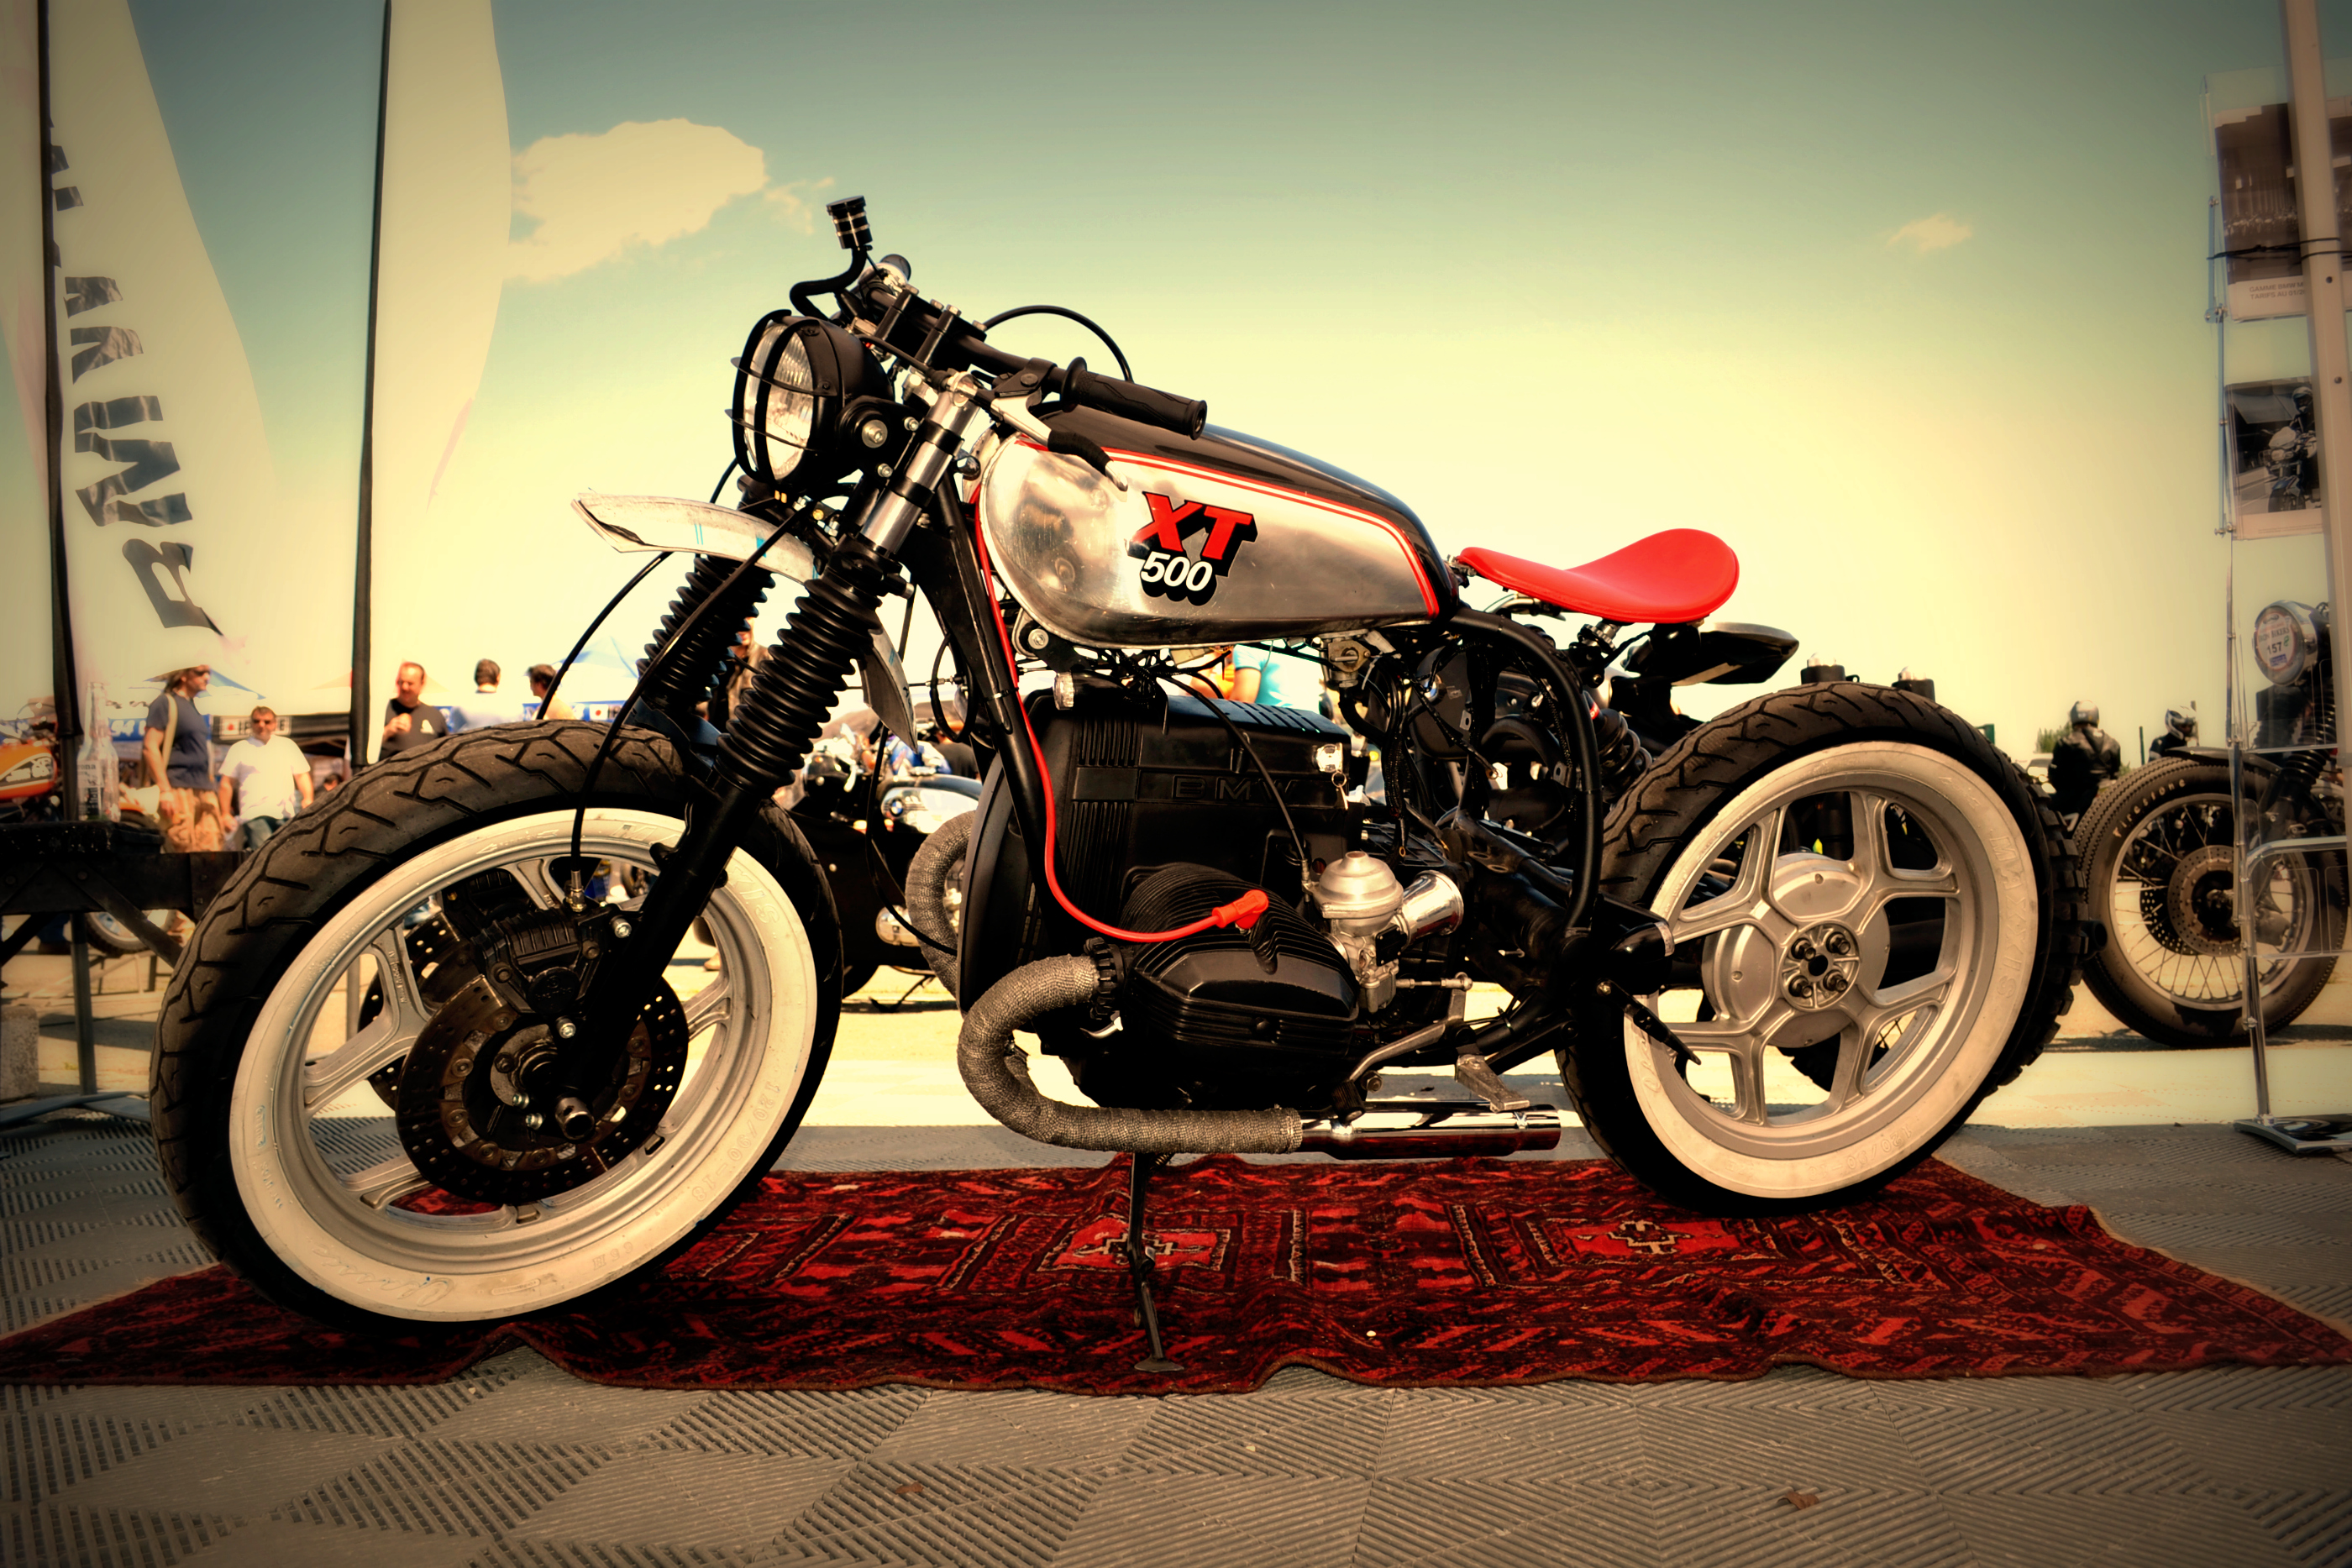 Bmw Xt 500 Iron Bikers Cafe Racer Blitz Motorcycle